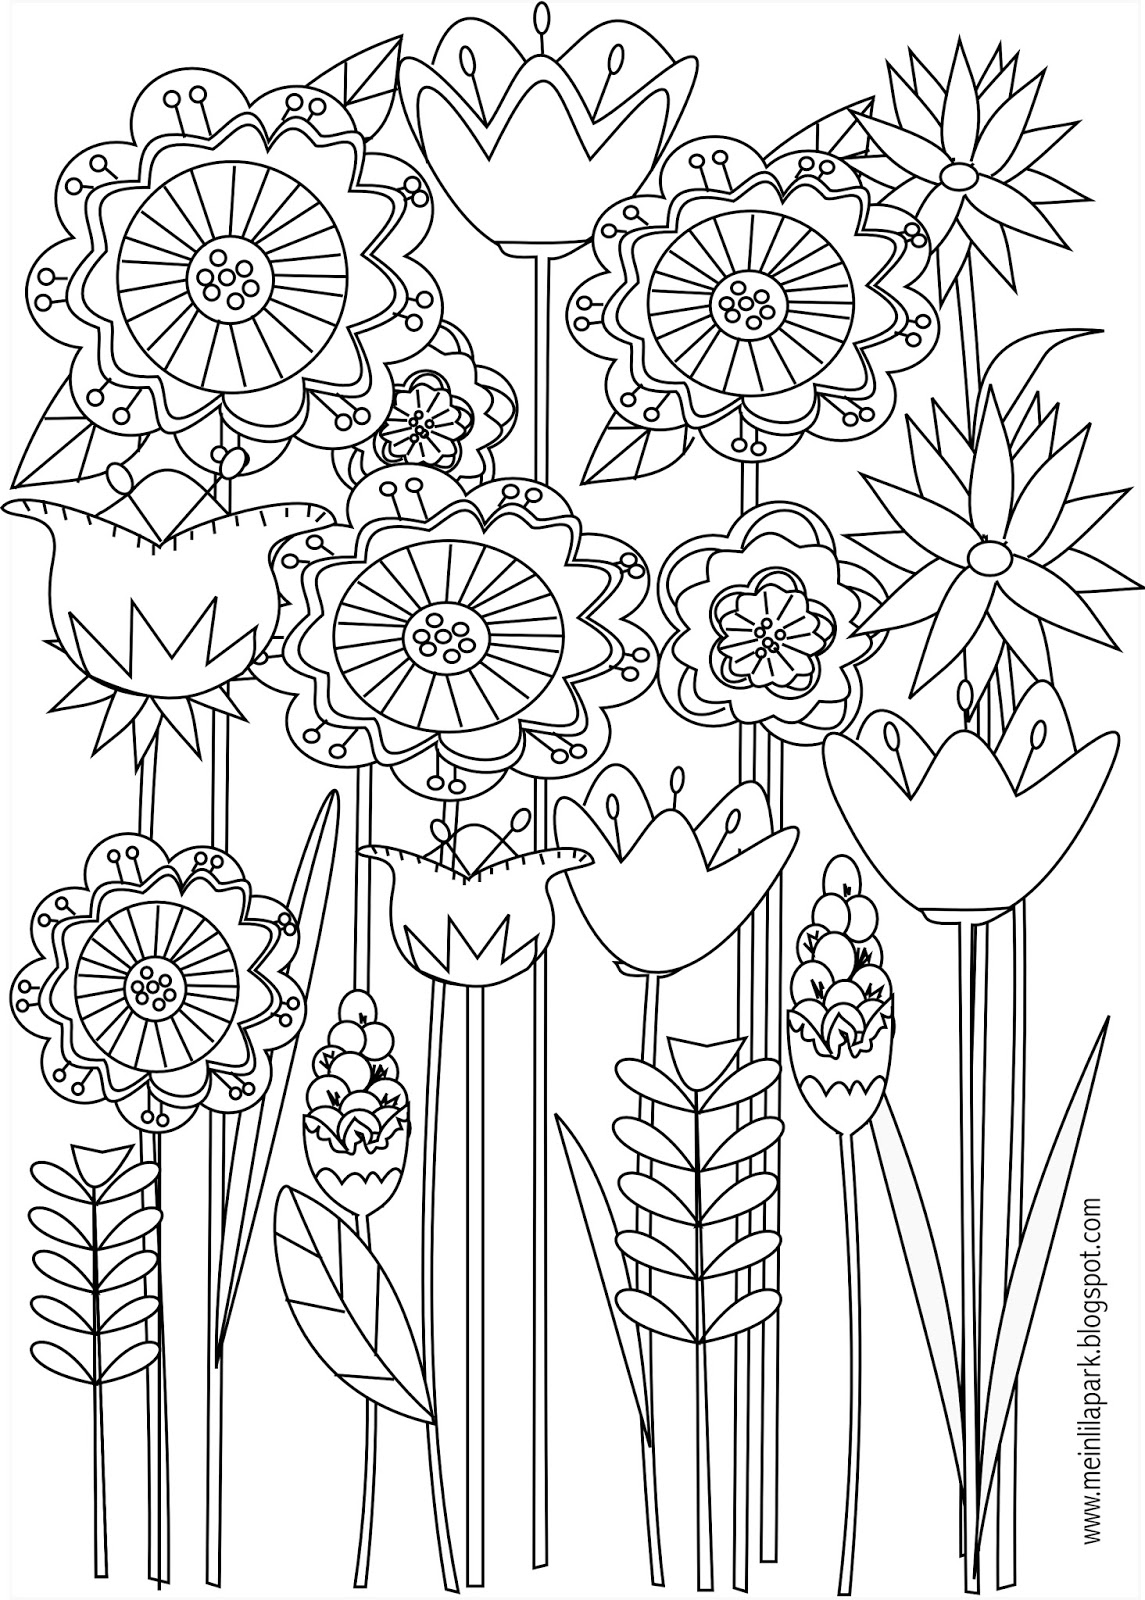 coloring pages flowers printable coloring pages flower free printable coloring pages coloring pages flowers printable